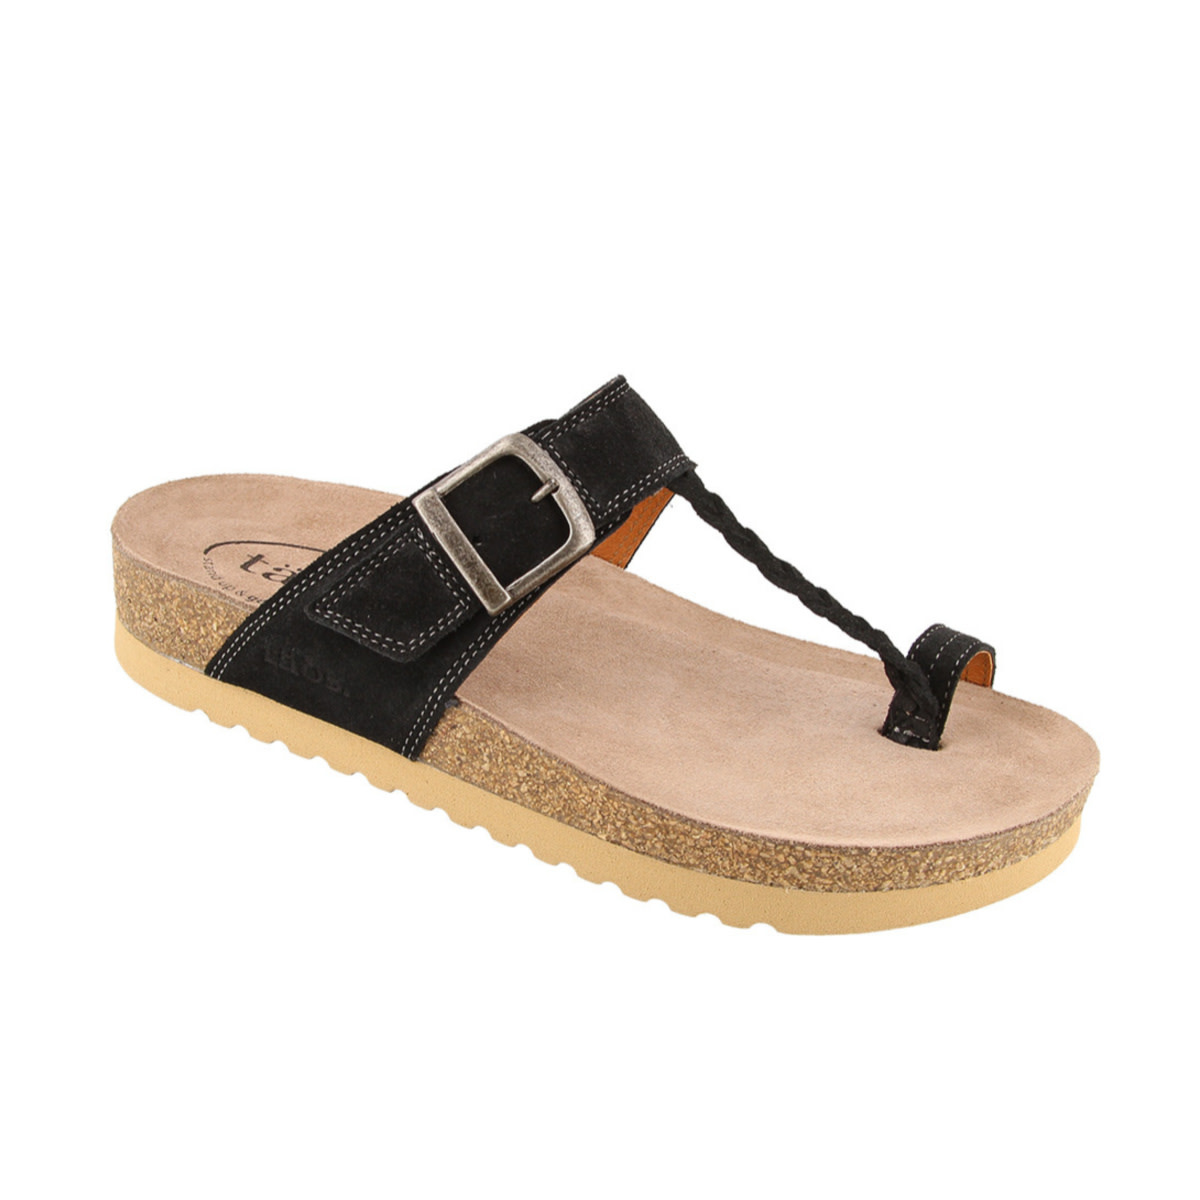 Taos Footwear Taos Hippie Black